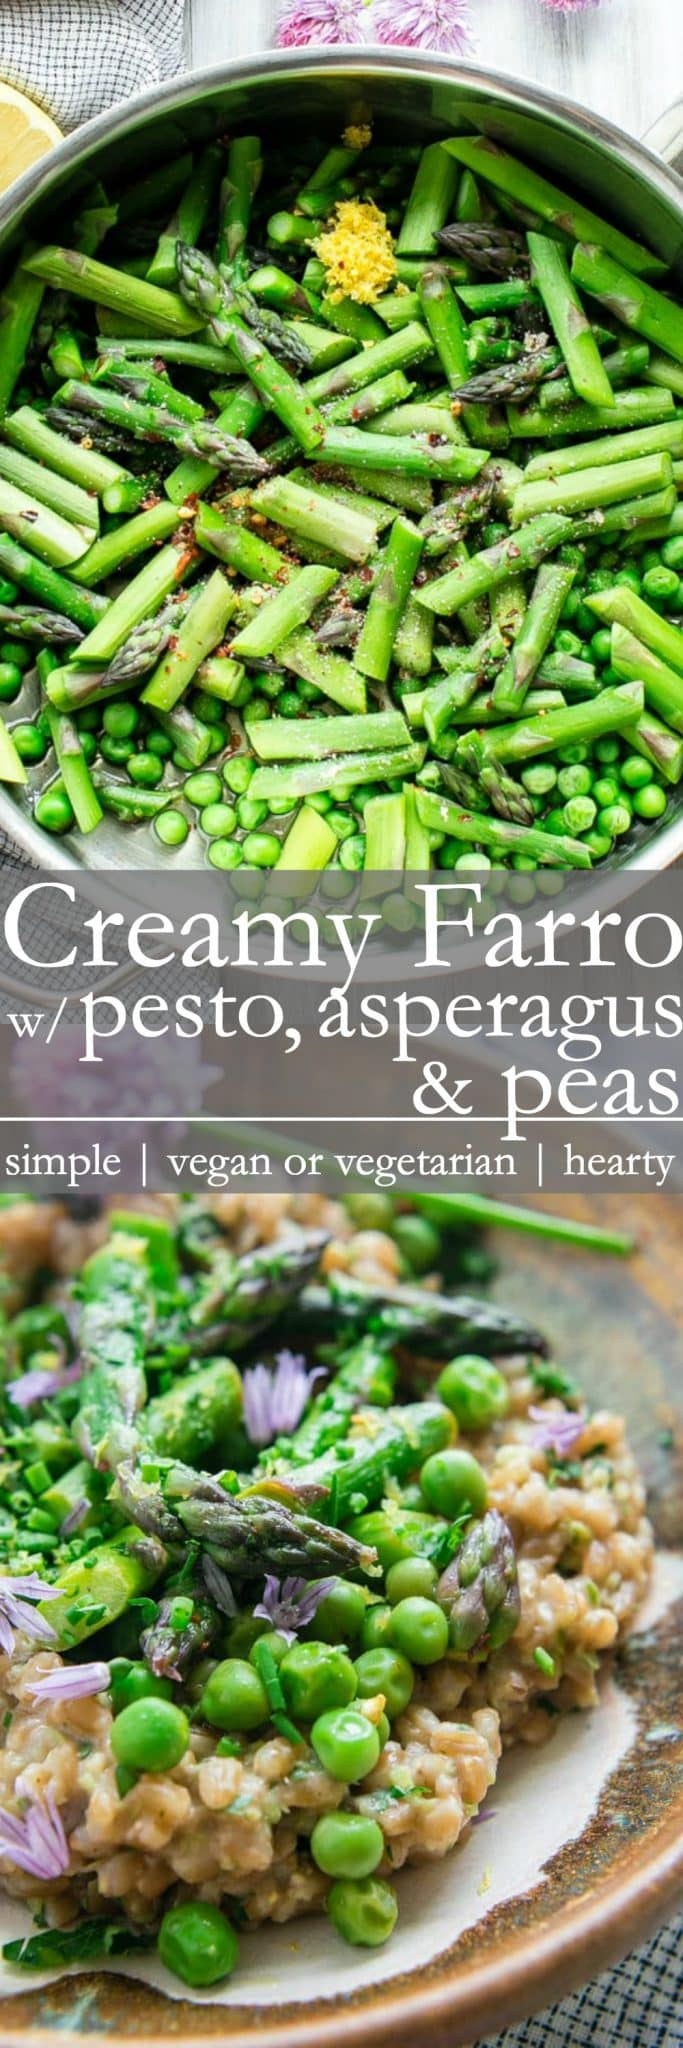 Hearty, lemony and fresh as Spring, this Creamy Farro with Pesto Asparagus and Peas recipe can be served warm or chilled. #SpringDinner #VeganDinner #VegetarianDinner #Farro #WholeGrain